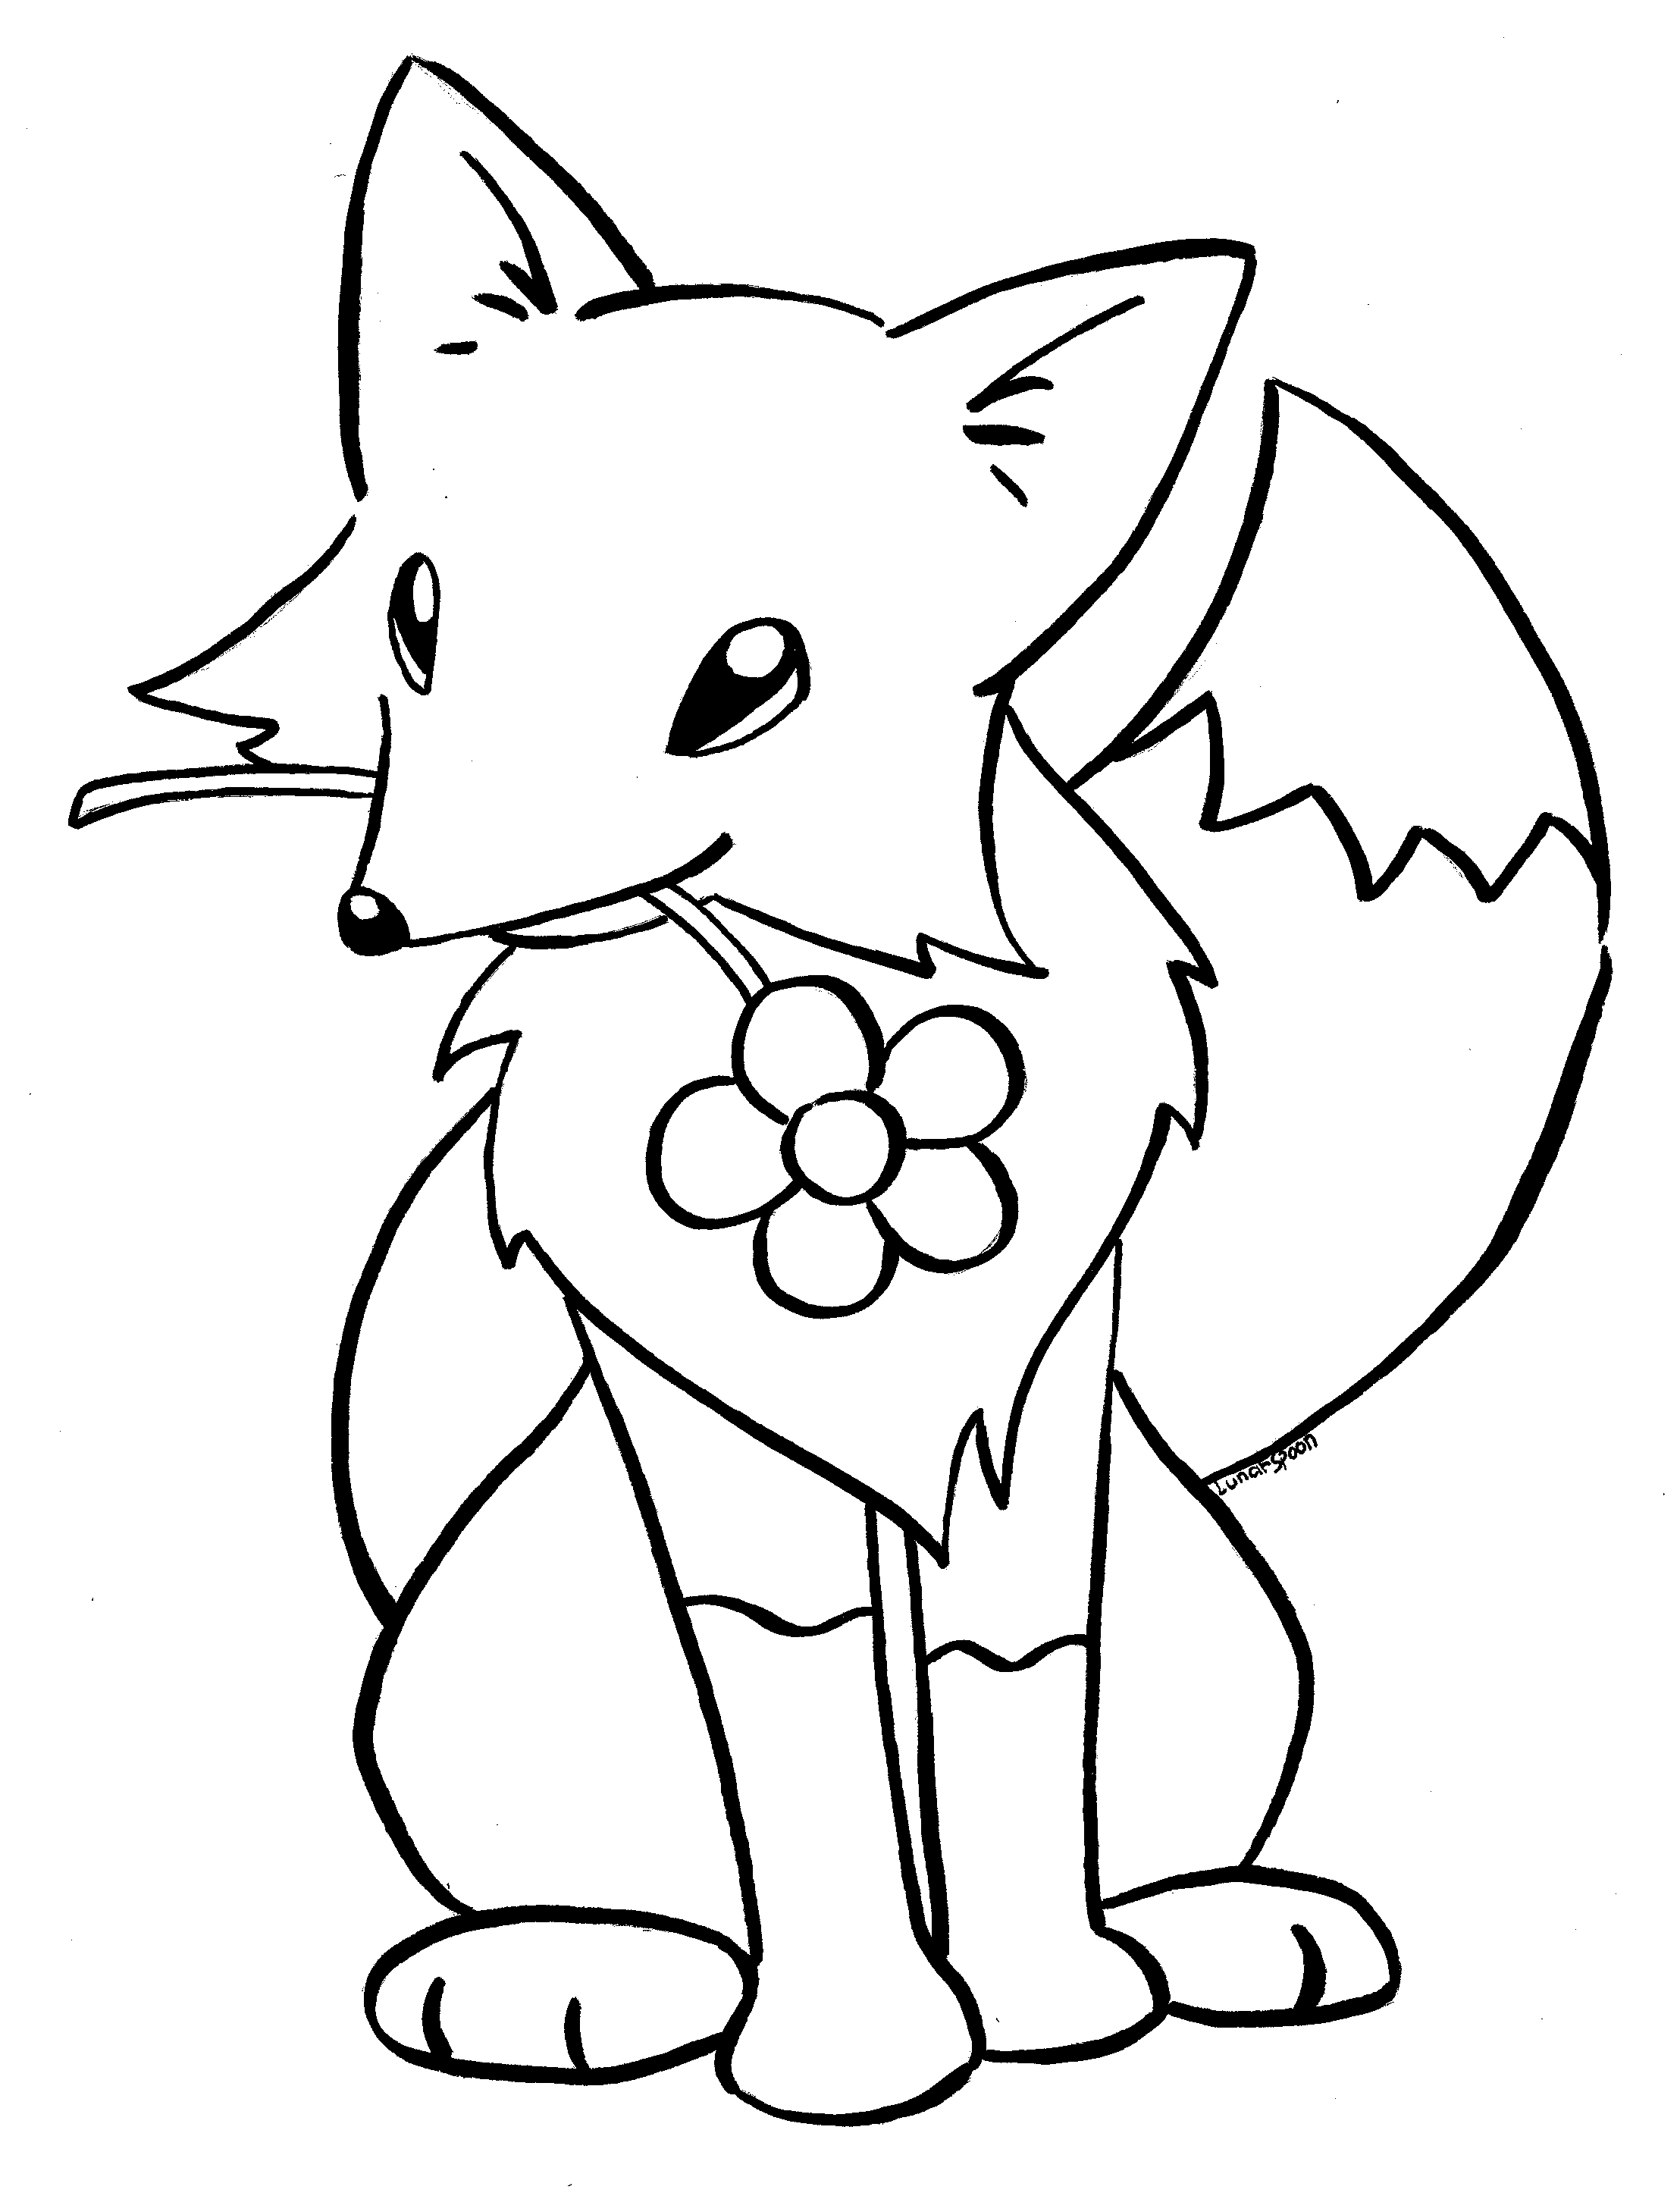 Fennec Fox Coloring Page at GetDrawings.com | Free for personal use ...